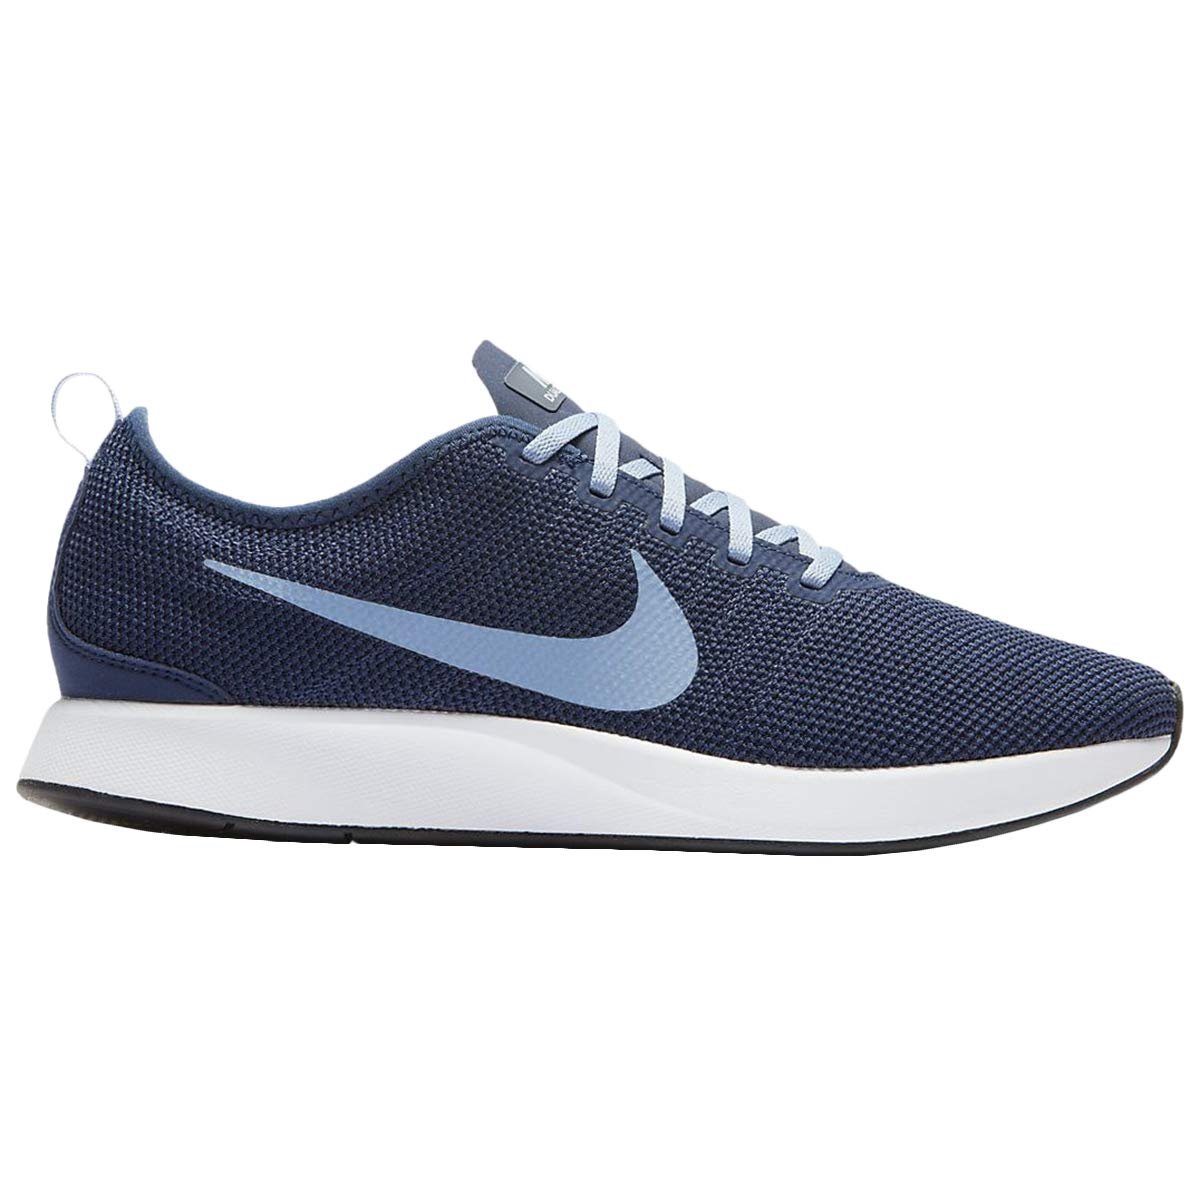 outlet store a07b6 1a852 Galleon - NIKE Mens Dualtone Racer Mesh Midnight Navy Work Blue Trainers 11  US